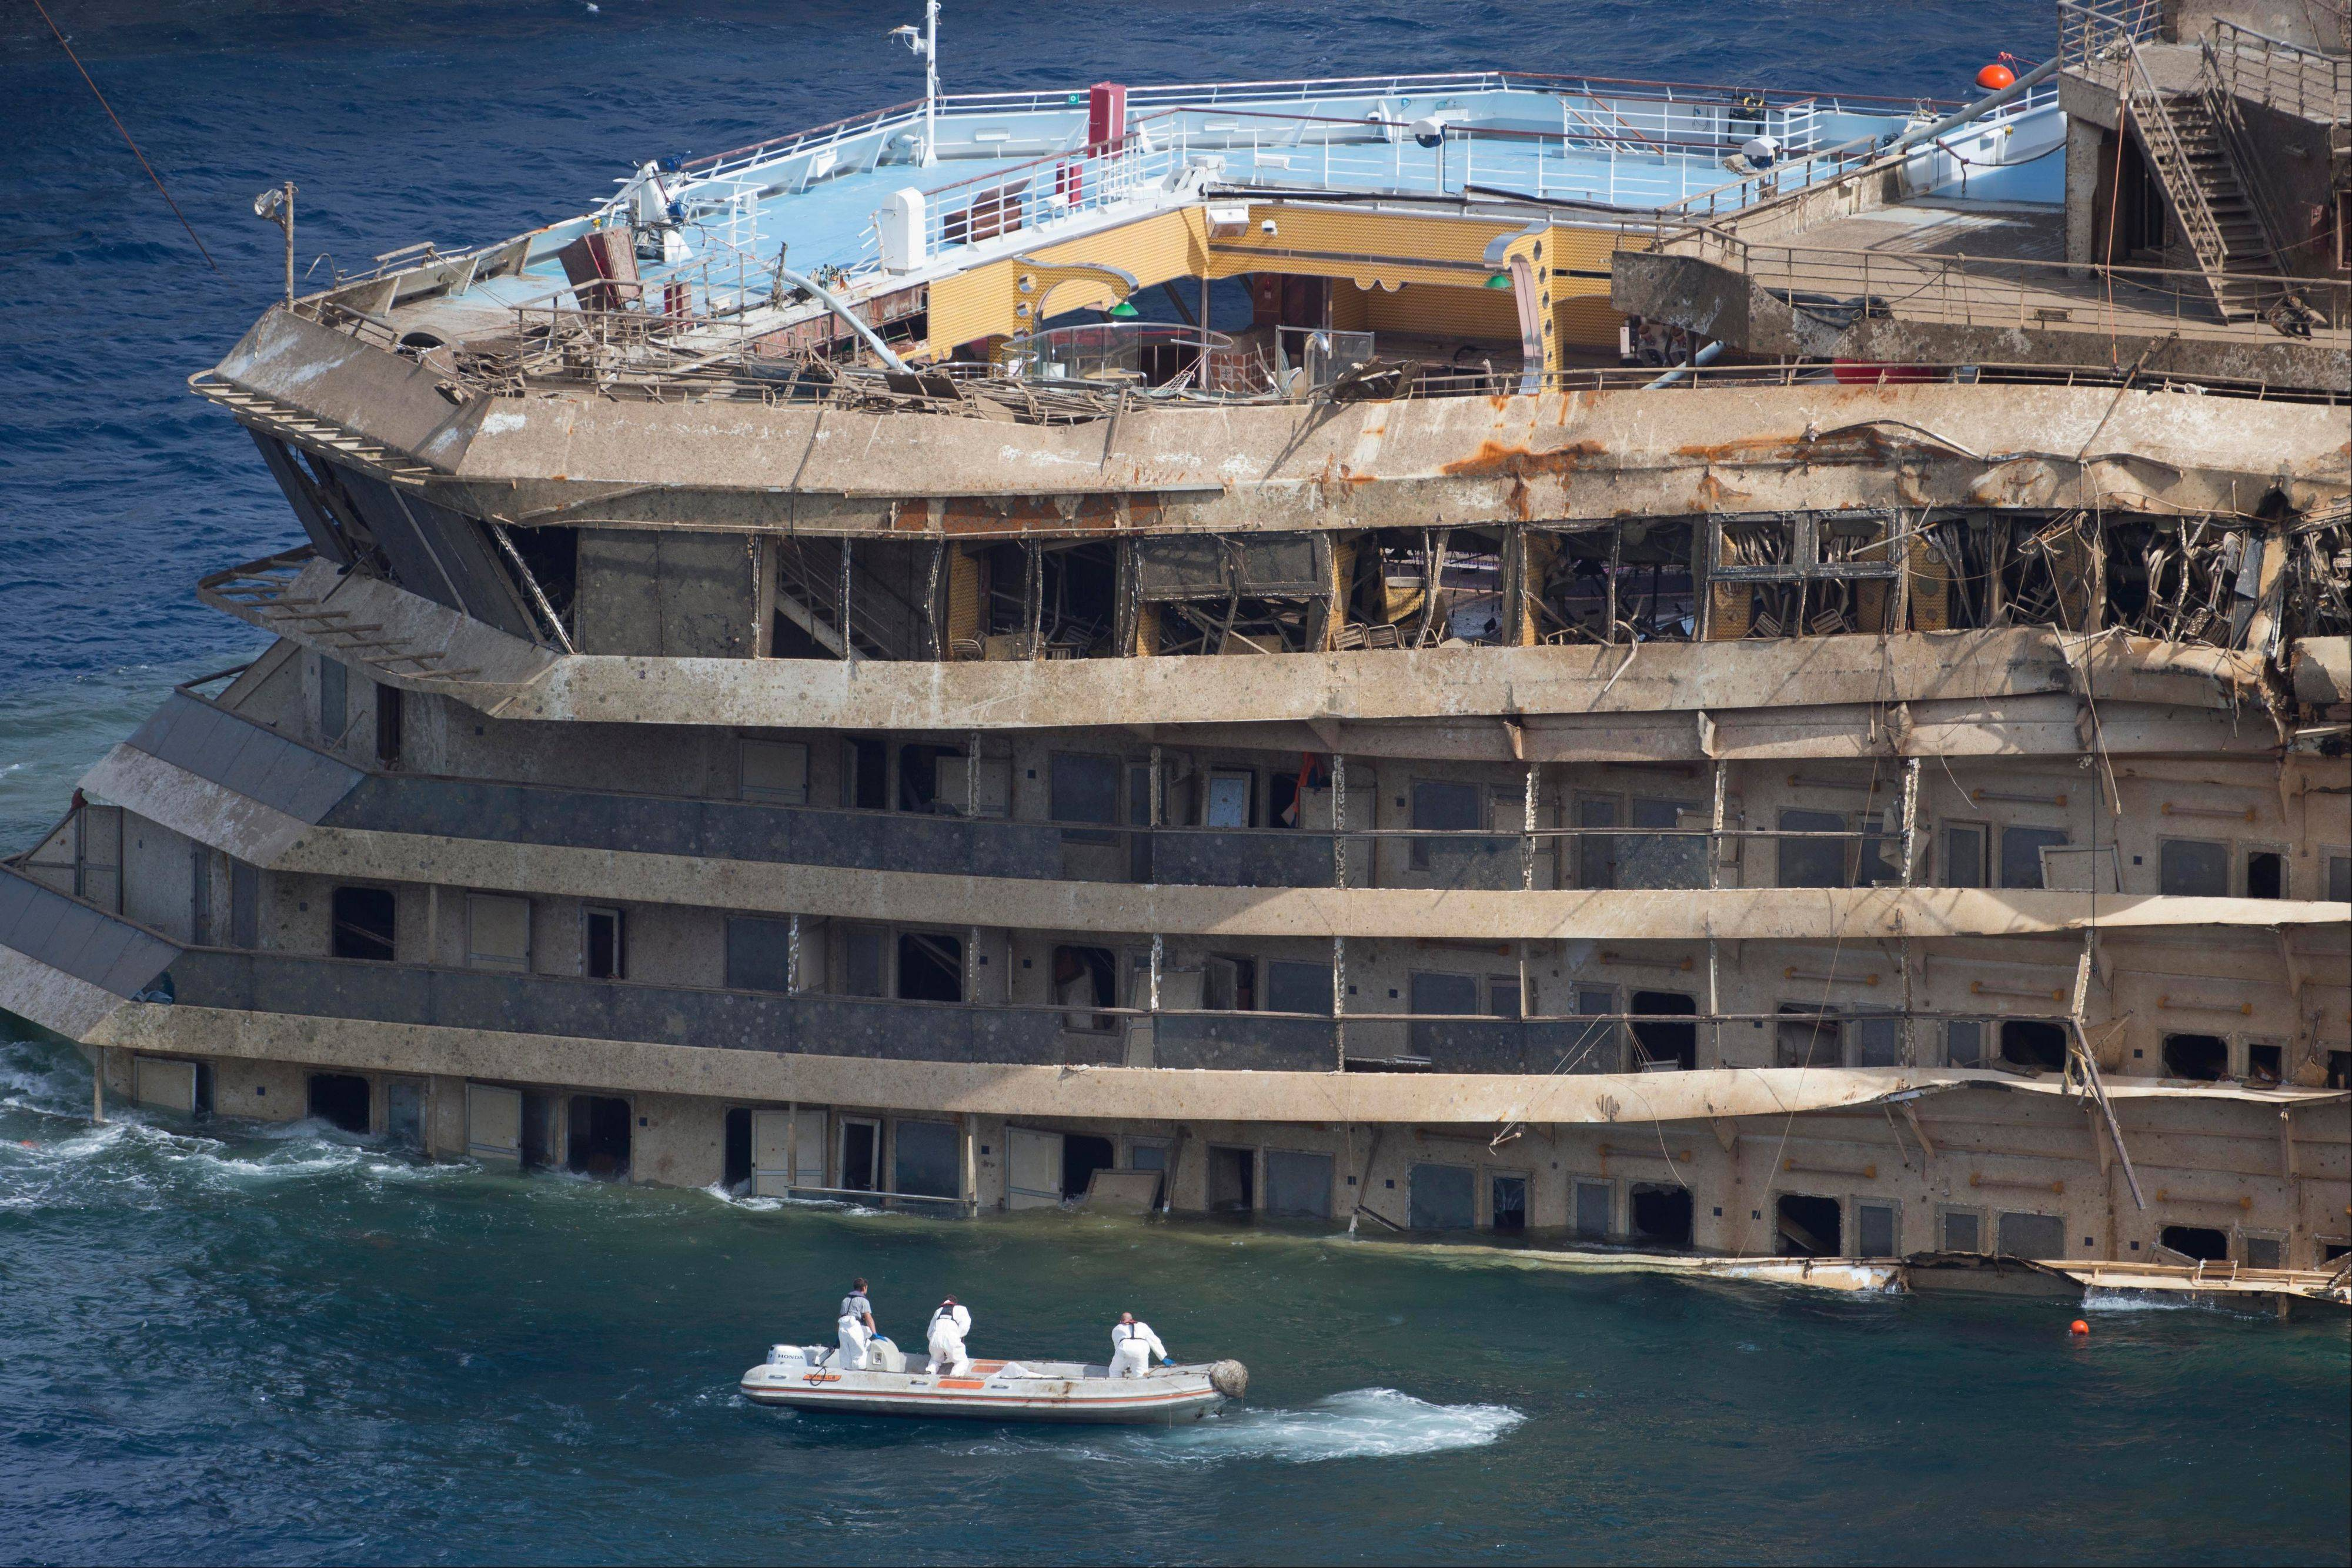 Workers on a boat sail past the Costa Concordia ship after it was lifted upright, on the Tuscan Island of Giglio, Italy, Tuesday, Sept. 17, 2013. Engineers declared success on Tuesday as the Costa Concordia cruise ship was pulled completely upright during a complicated, 19-hour operation to wrench it from its side where it capsized last year off Tuscany, an unprecedented feat that sets the stage for it to be towed away next year.